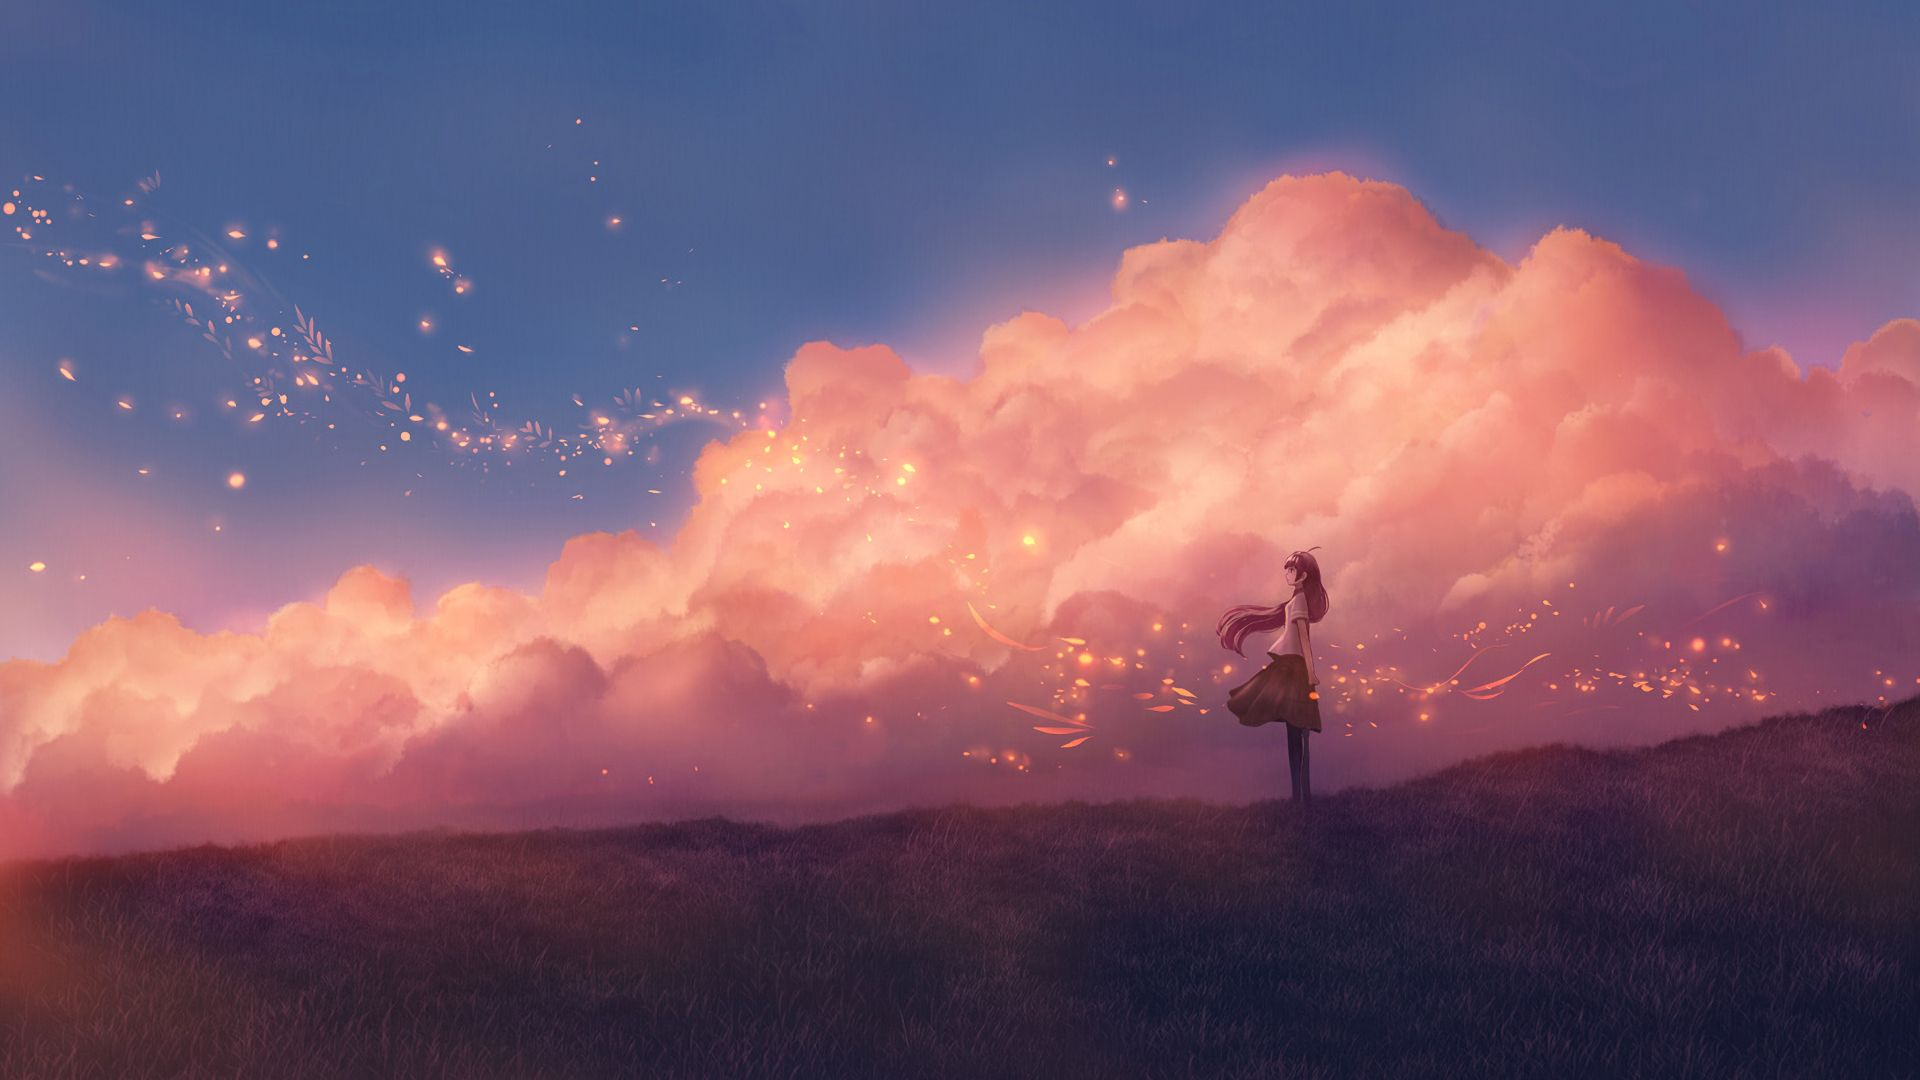 Anime Pink Sky 1920x1080 Wallpapers - Wallpaper Cave